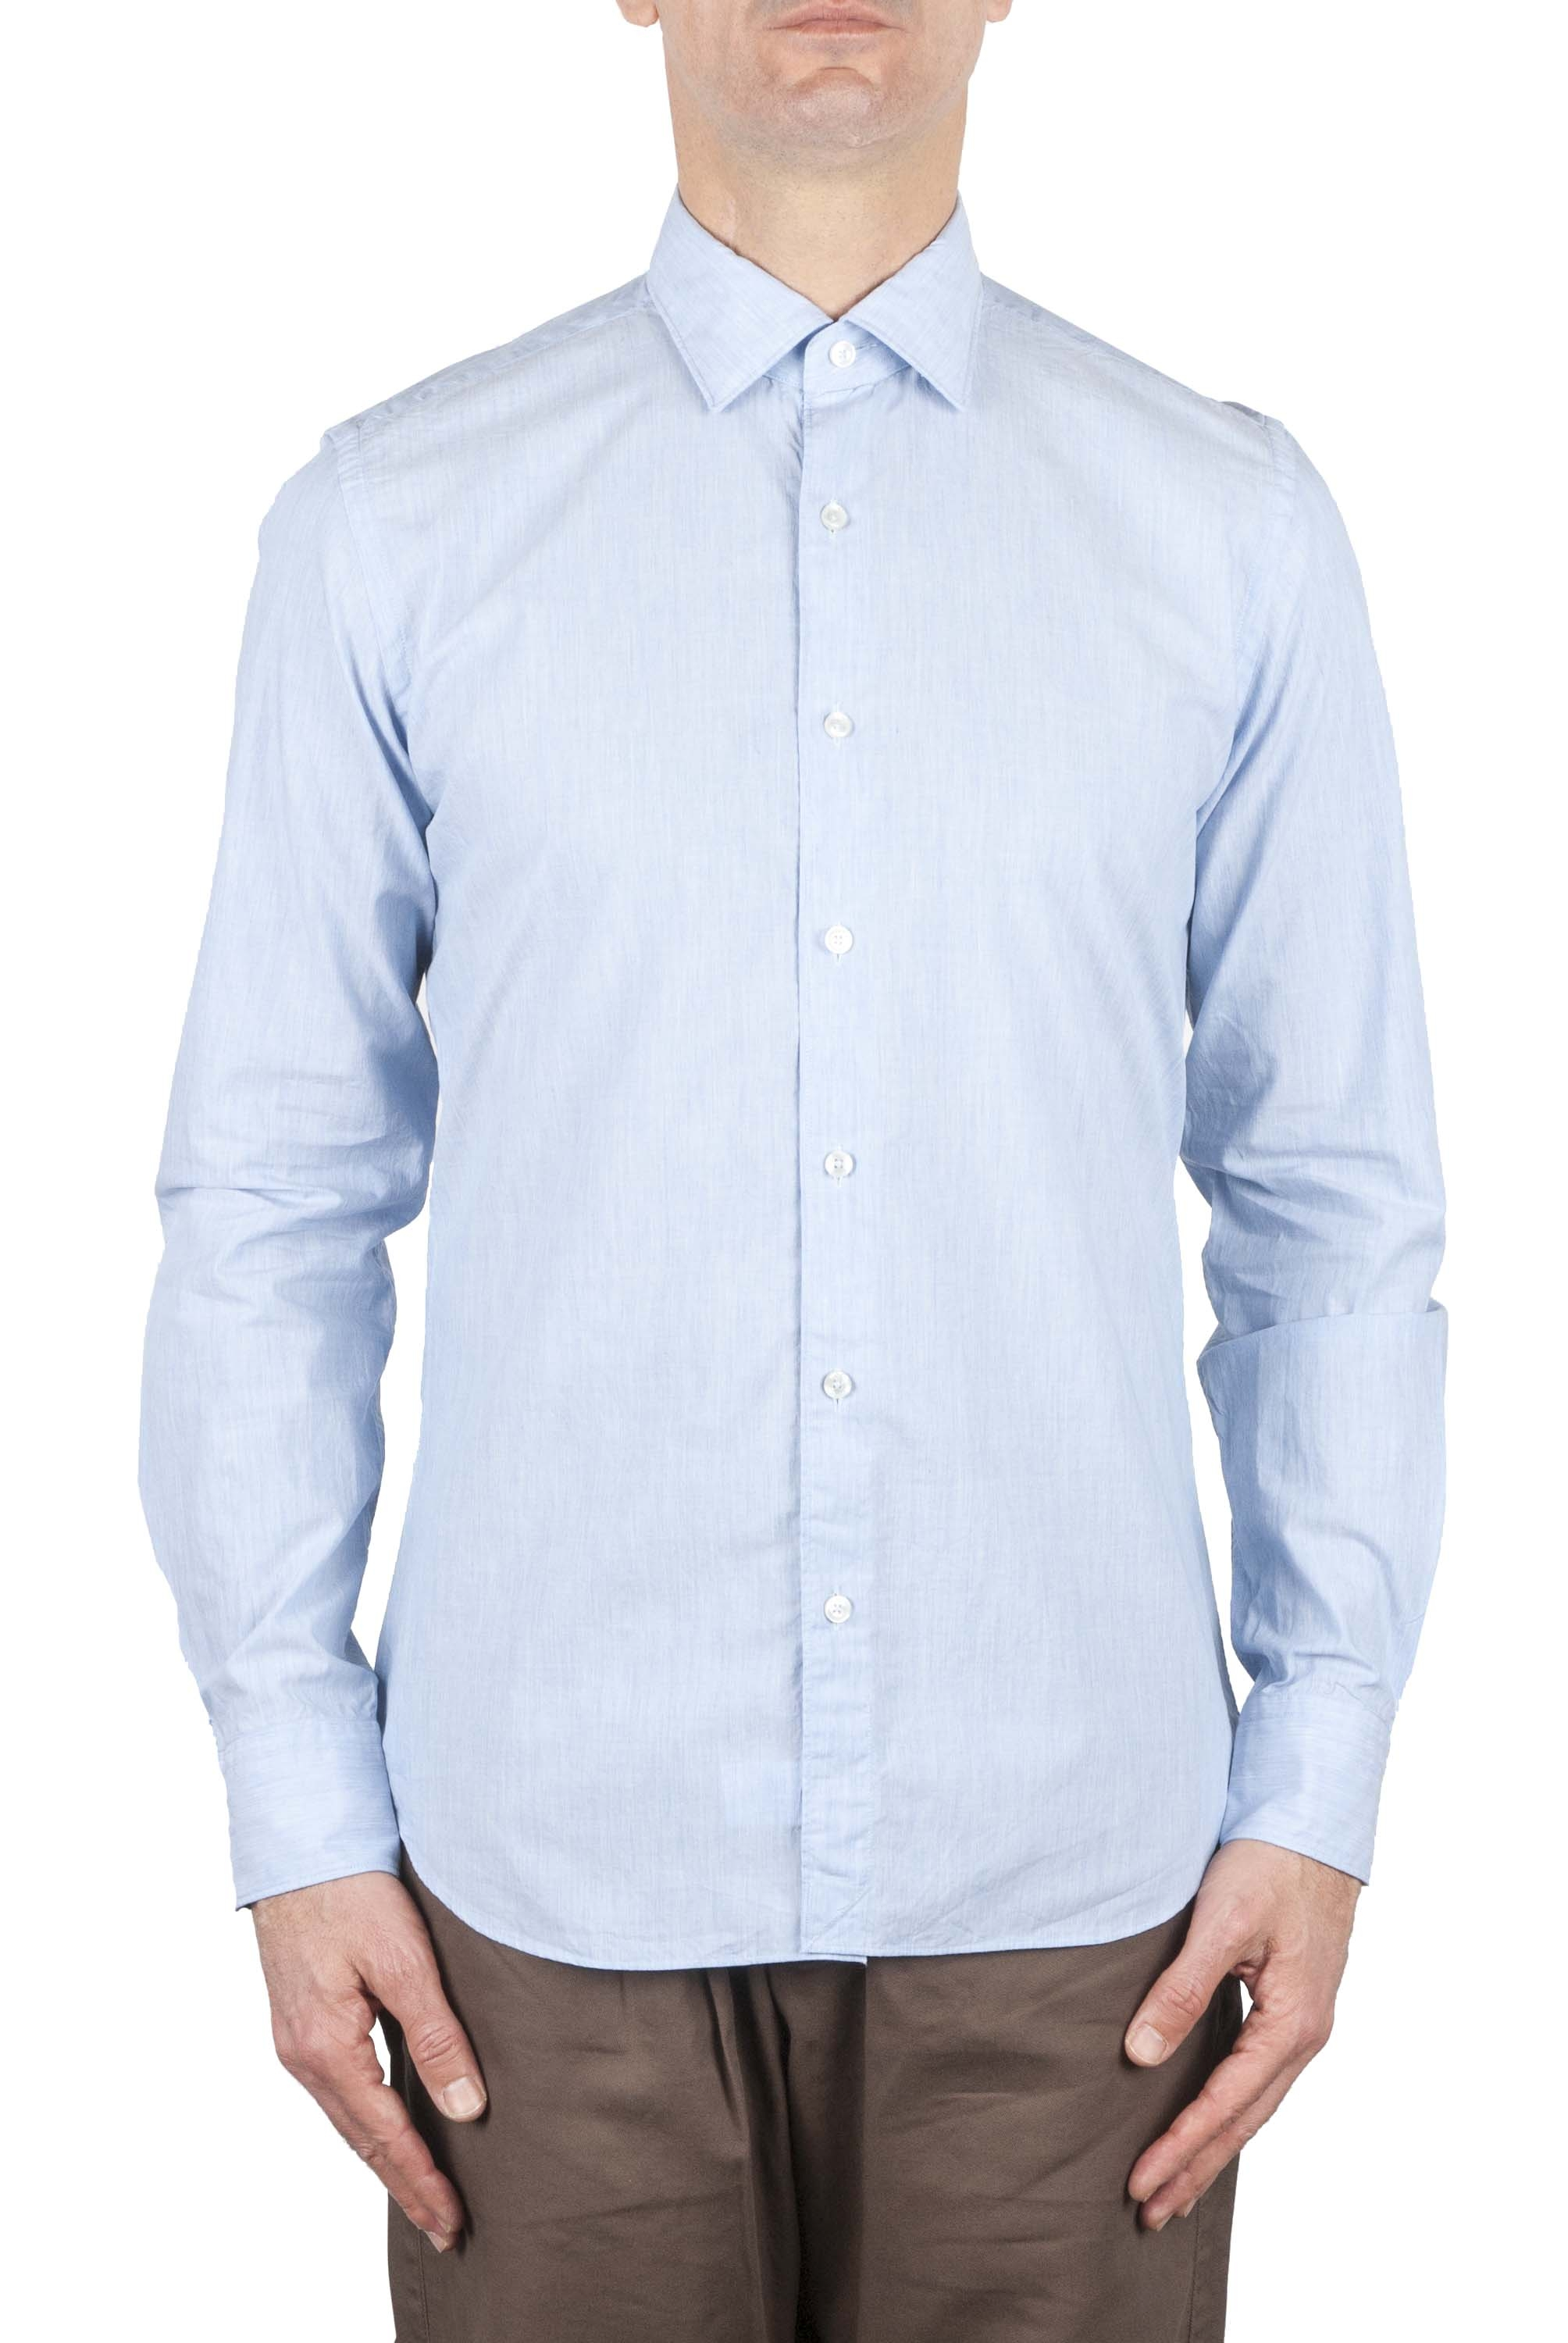 SBU 01072 Super cotton shirt 01